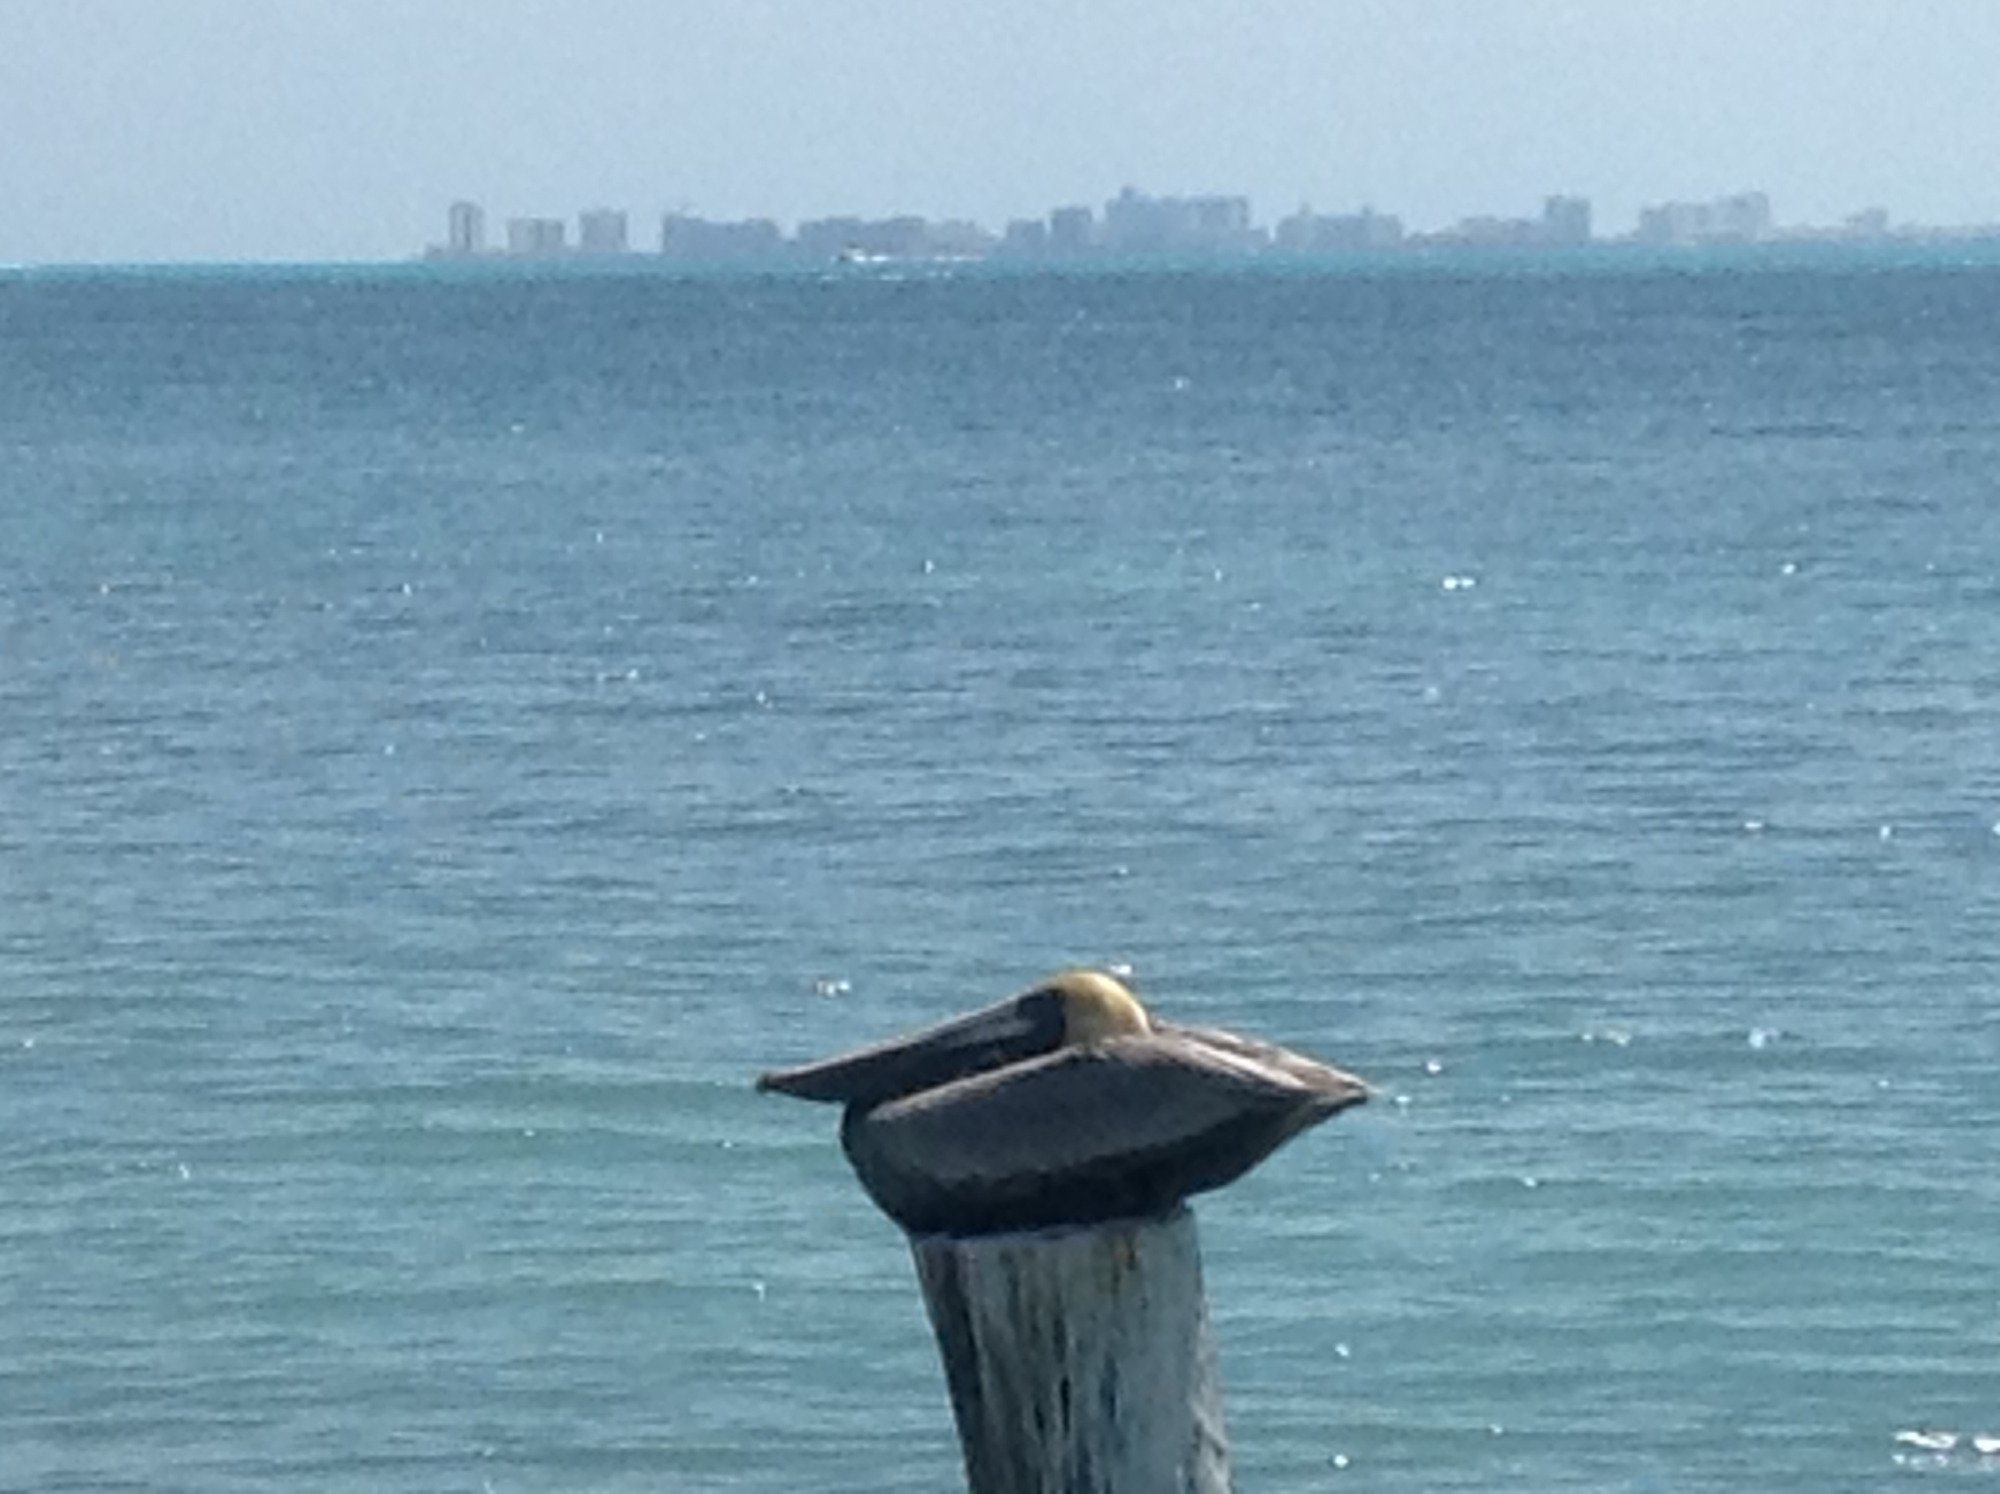 Pelican with Cancun as backdrop